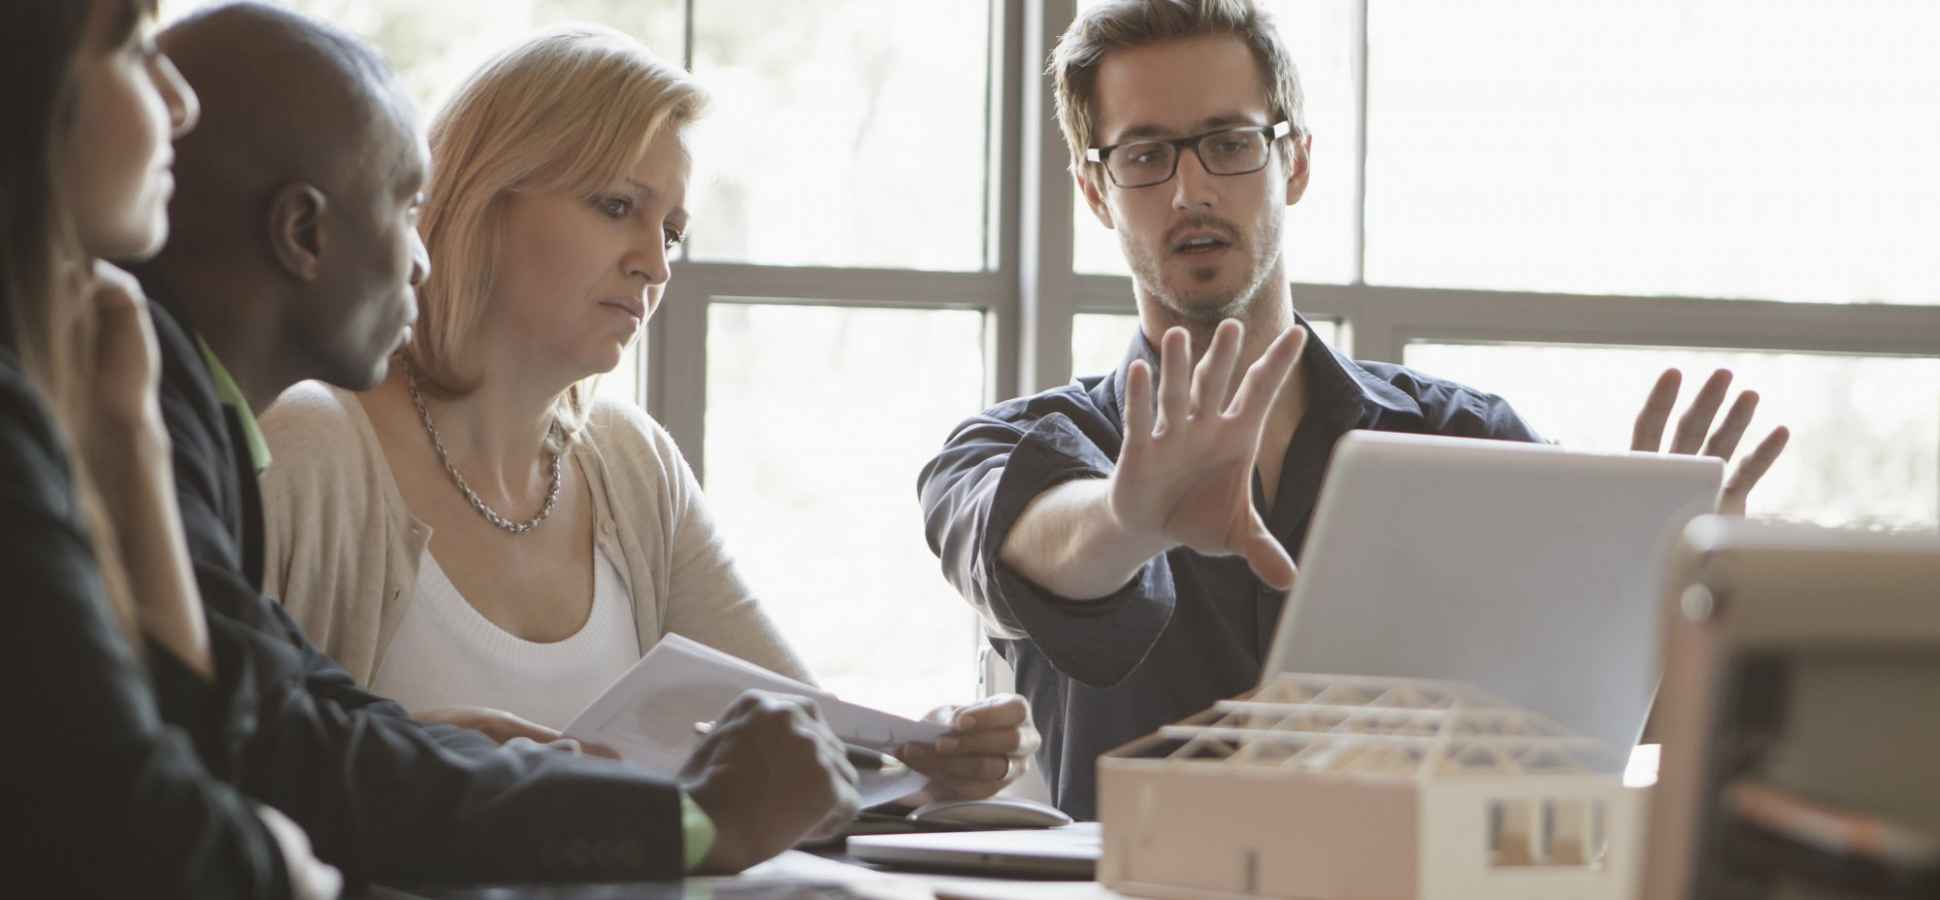 6 Ways to Be More Persuasive at Work